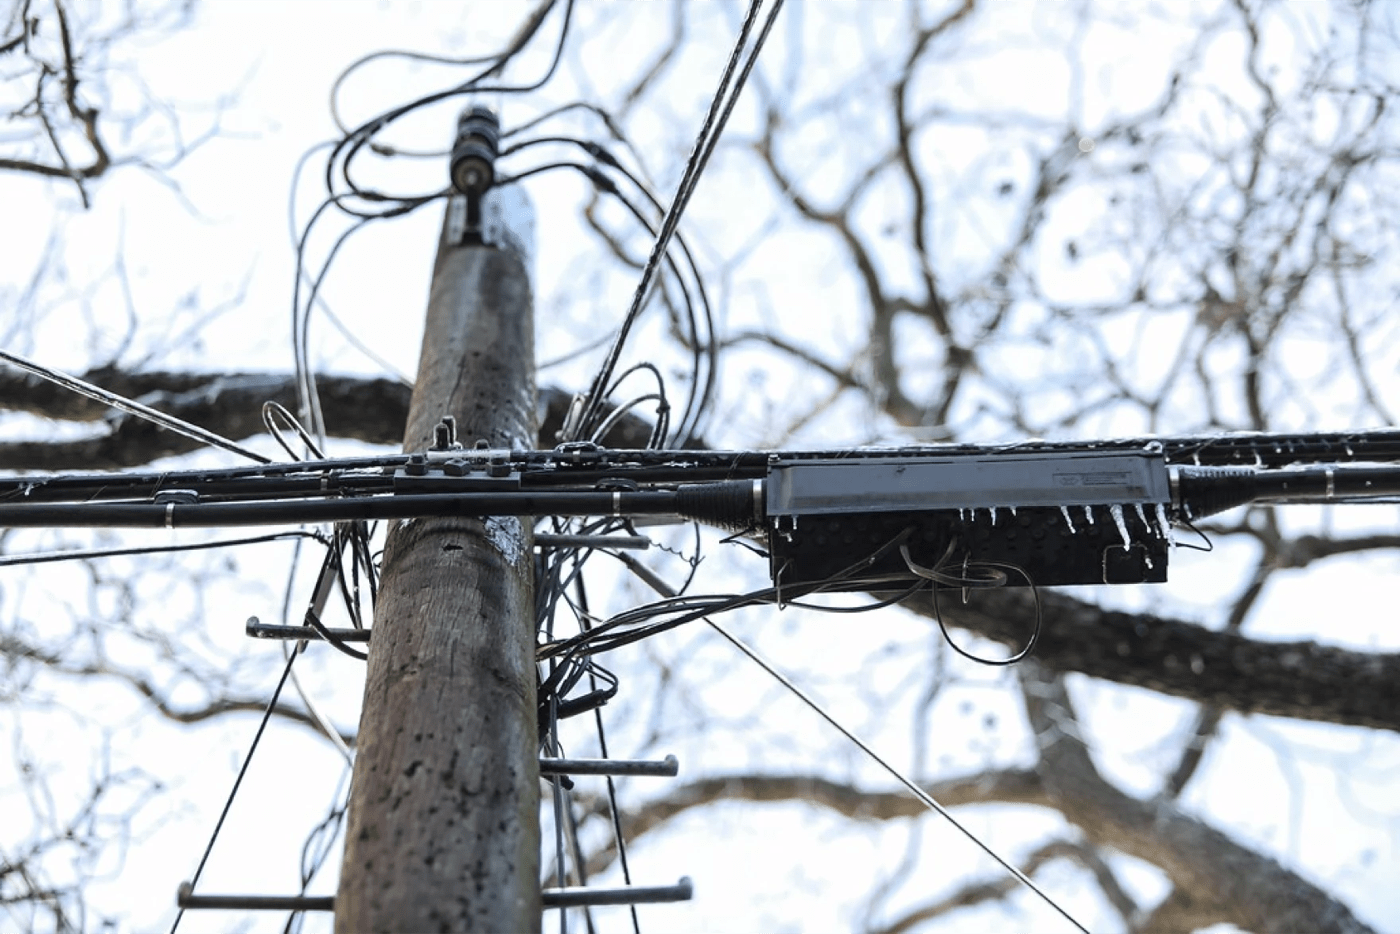 looking up at ice-covered power lines with bare trees in the background